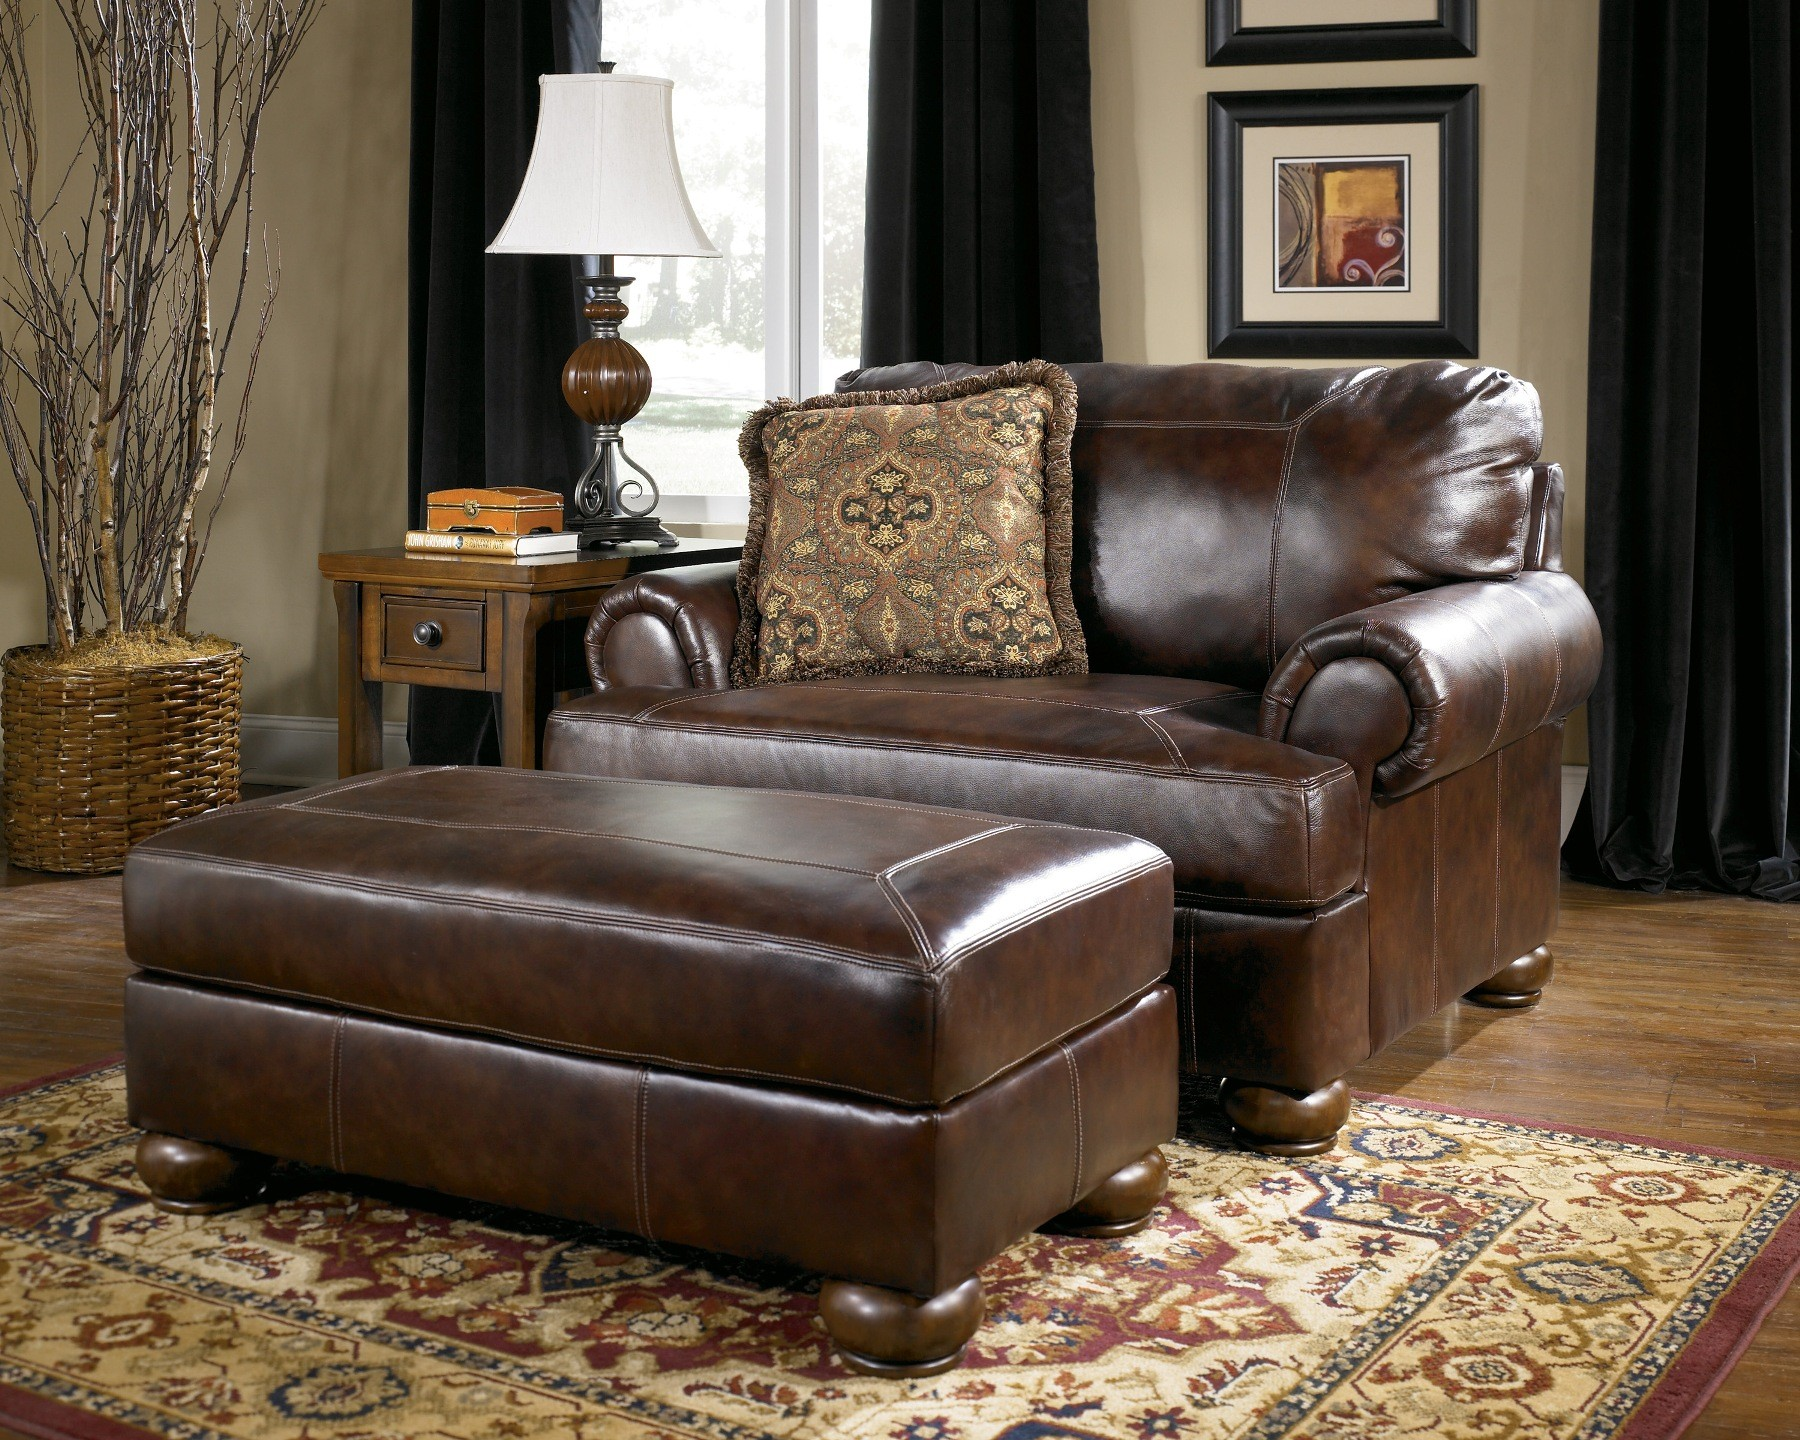 Axiom Walnut Living Room Set from Ashley (42000) | Coleman Furniture